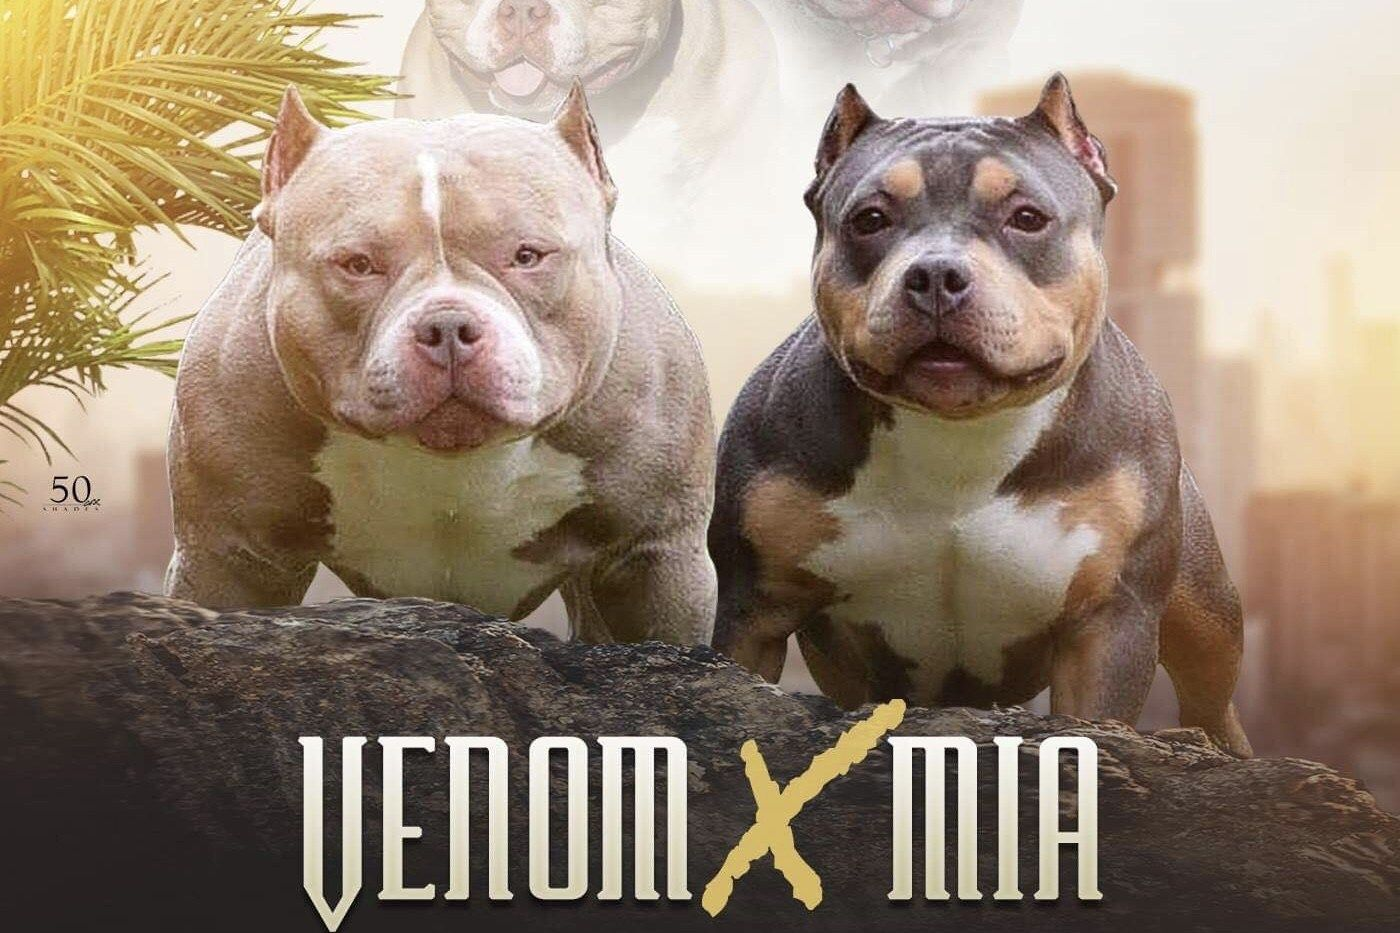 Pocket Bully Breedings Venomline Available Pups For Sale Upcoming Breedings Just Announced Venomline Texas Size Bu Puppies For Sale Pocket Bully Pup